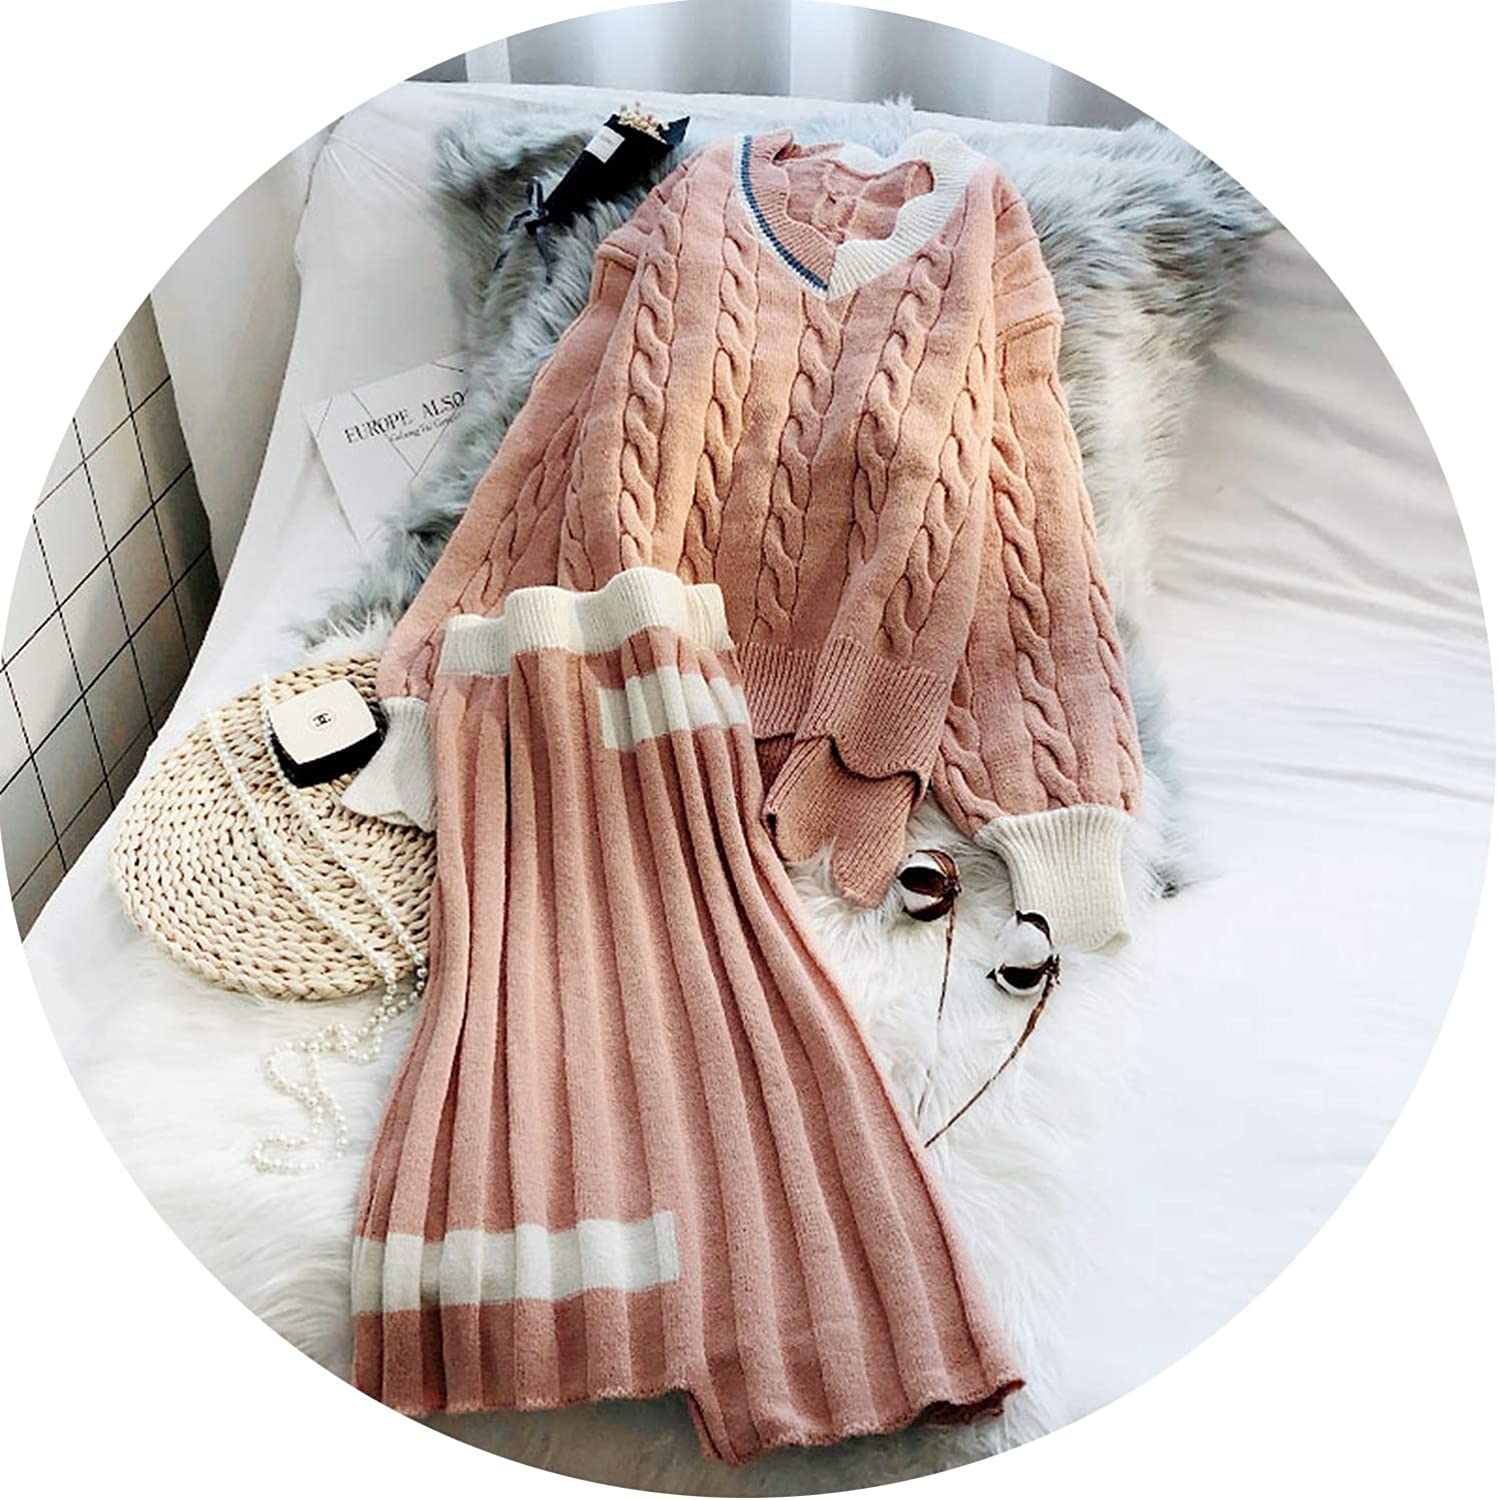 Casual Knit Suits Skirt Irregular Womens Wool Suits Autumn Winter Sweater Sets